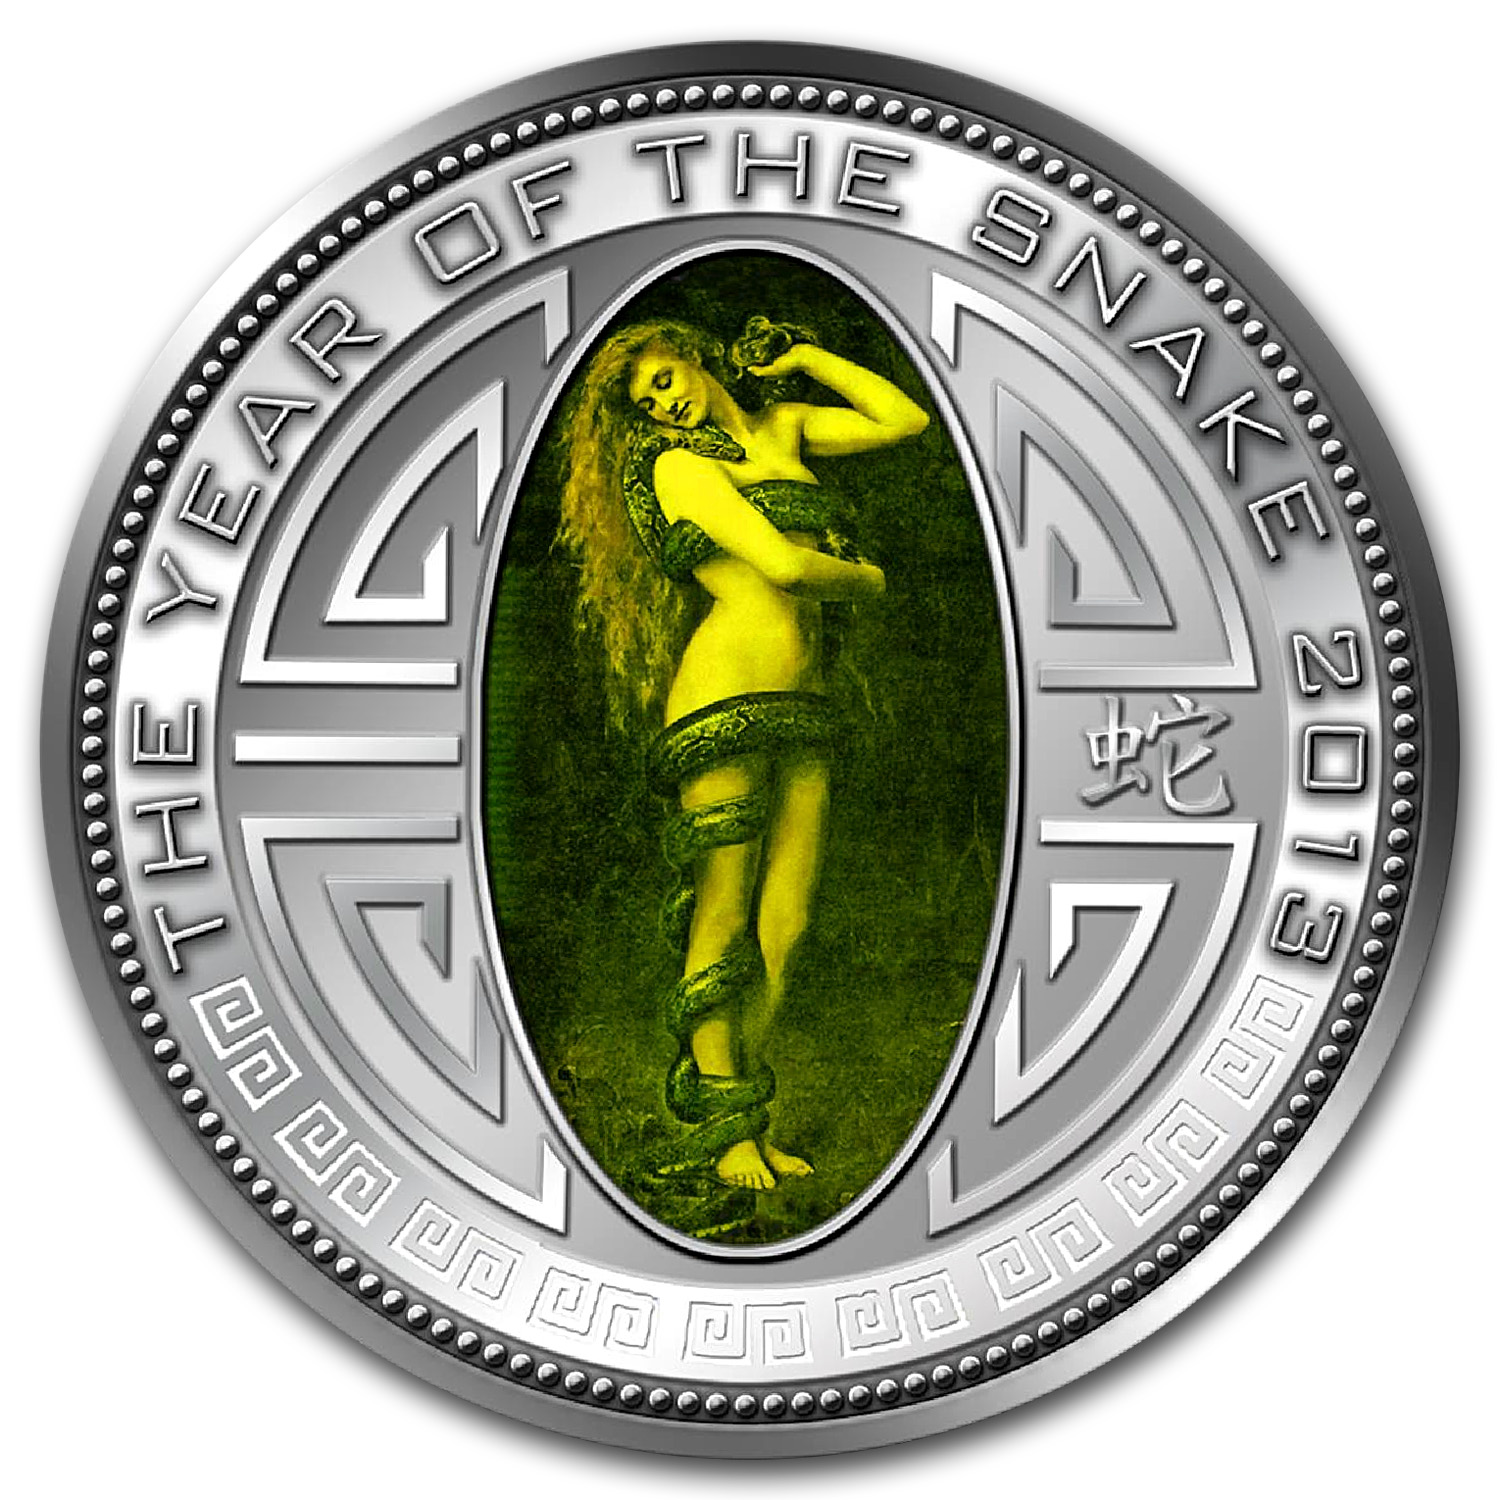 2013 South Korea Silver 5 Won Year of the Snake/Lilith (Hologram)